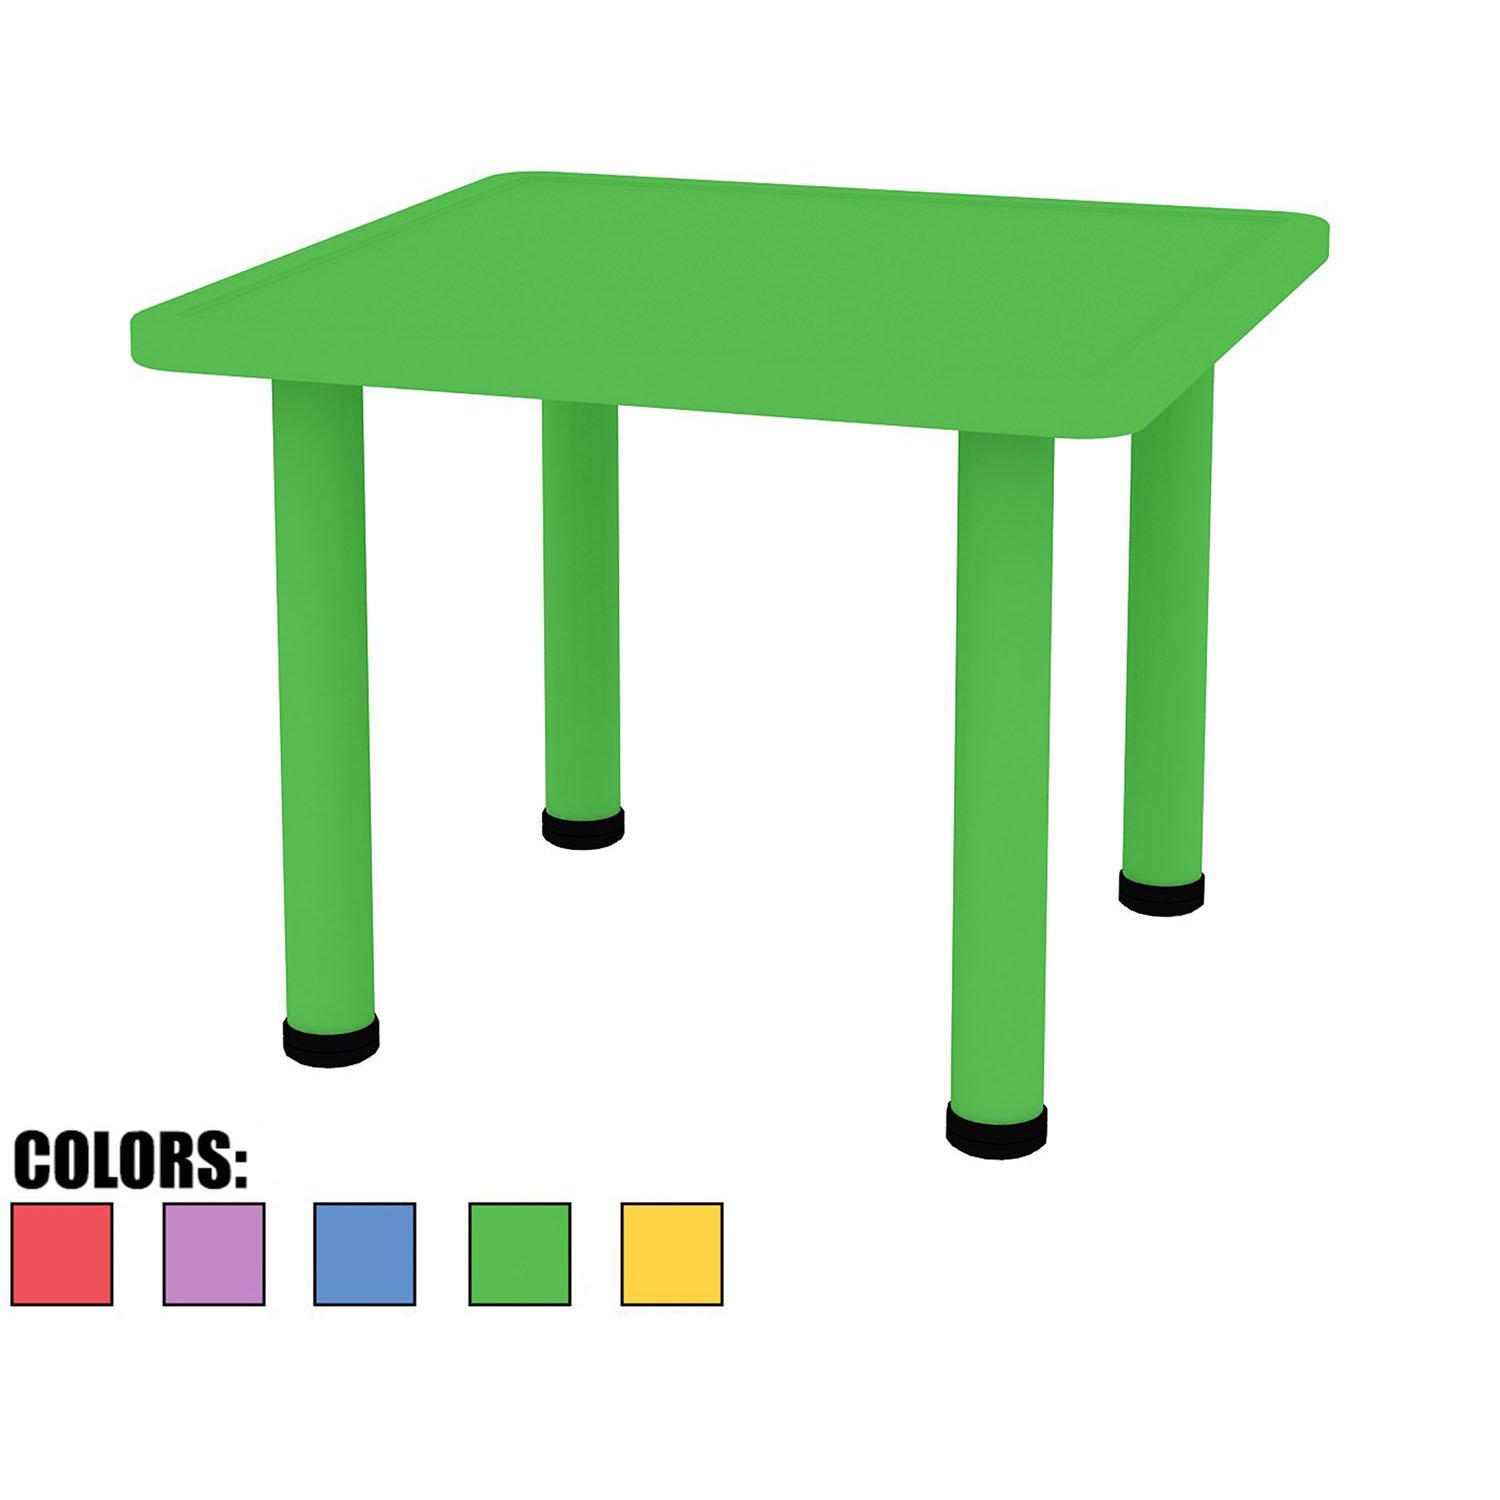 2xhome - Green - Kids Table - Height Adjustable 18.25 inches to 19.25 inches - Square Shaped Plastic Activity table With Metal legs for Toddler Child Furniture Preschool School Learn Play